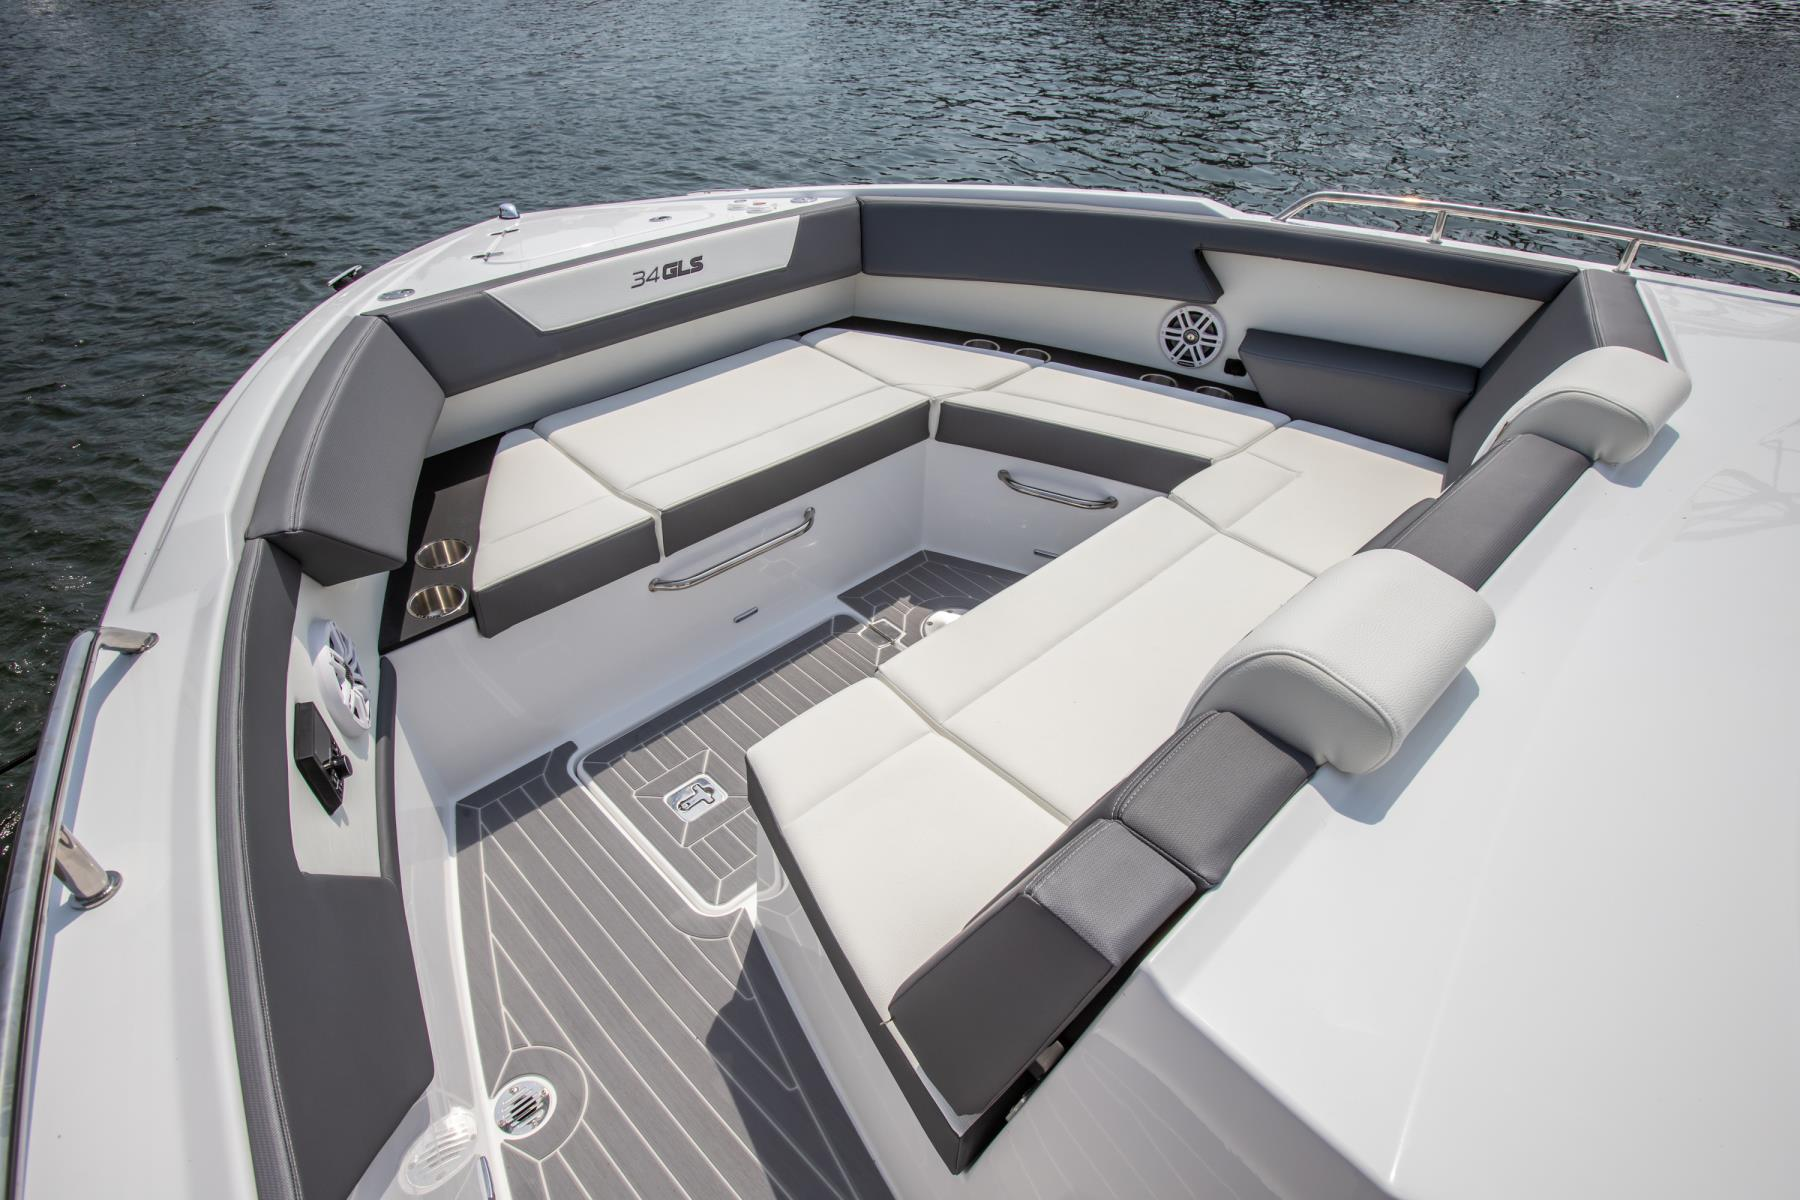 Helm of a Cruiser Yachts 34 GLS